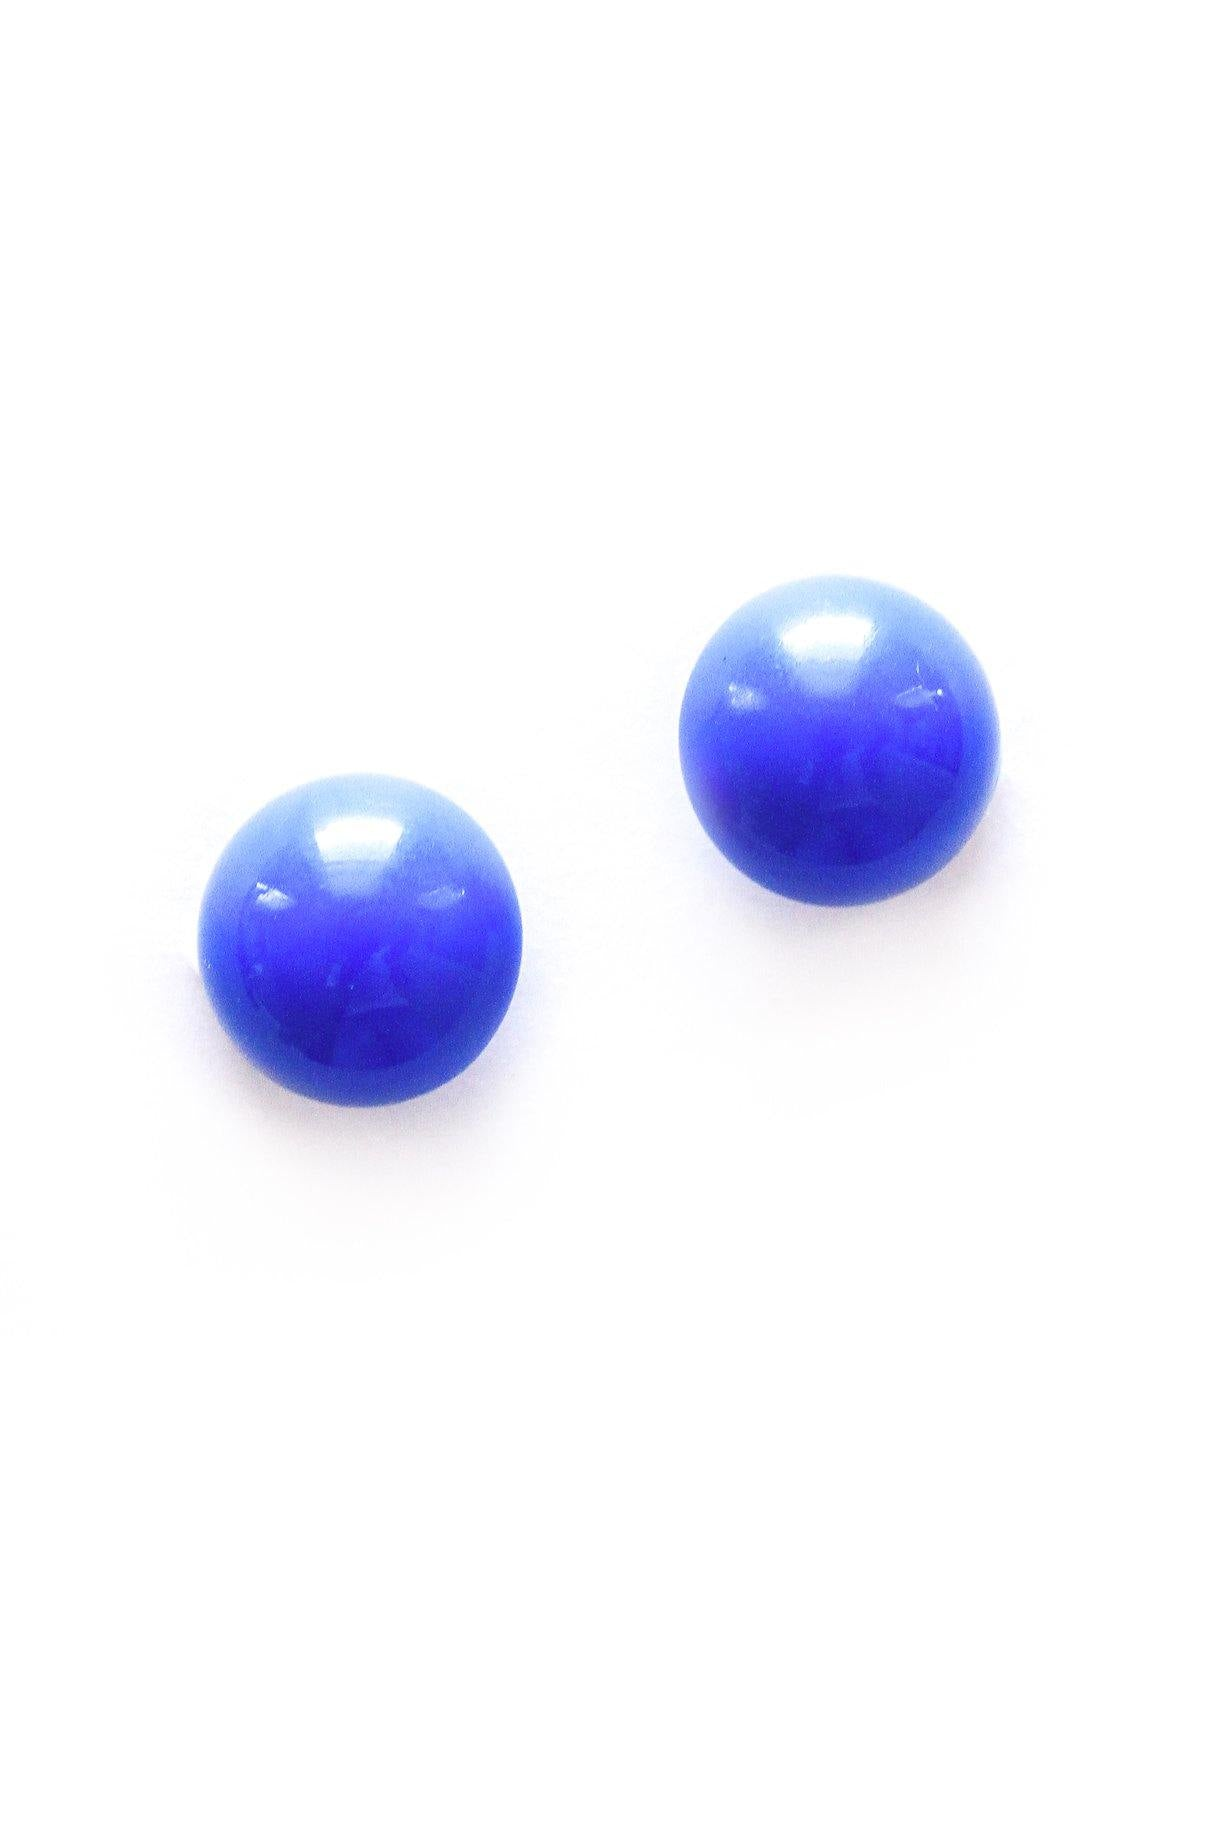 Blue vintage button earrings from Sweet & Spark.